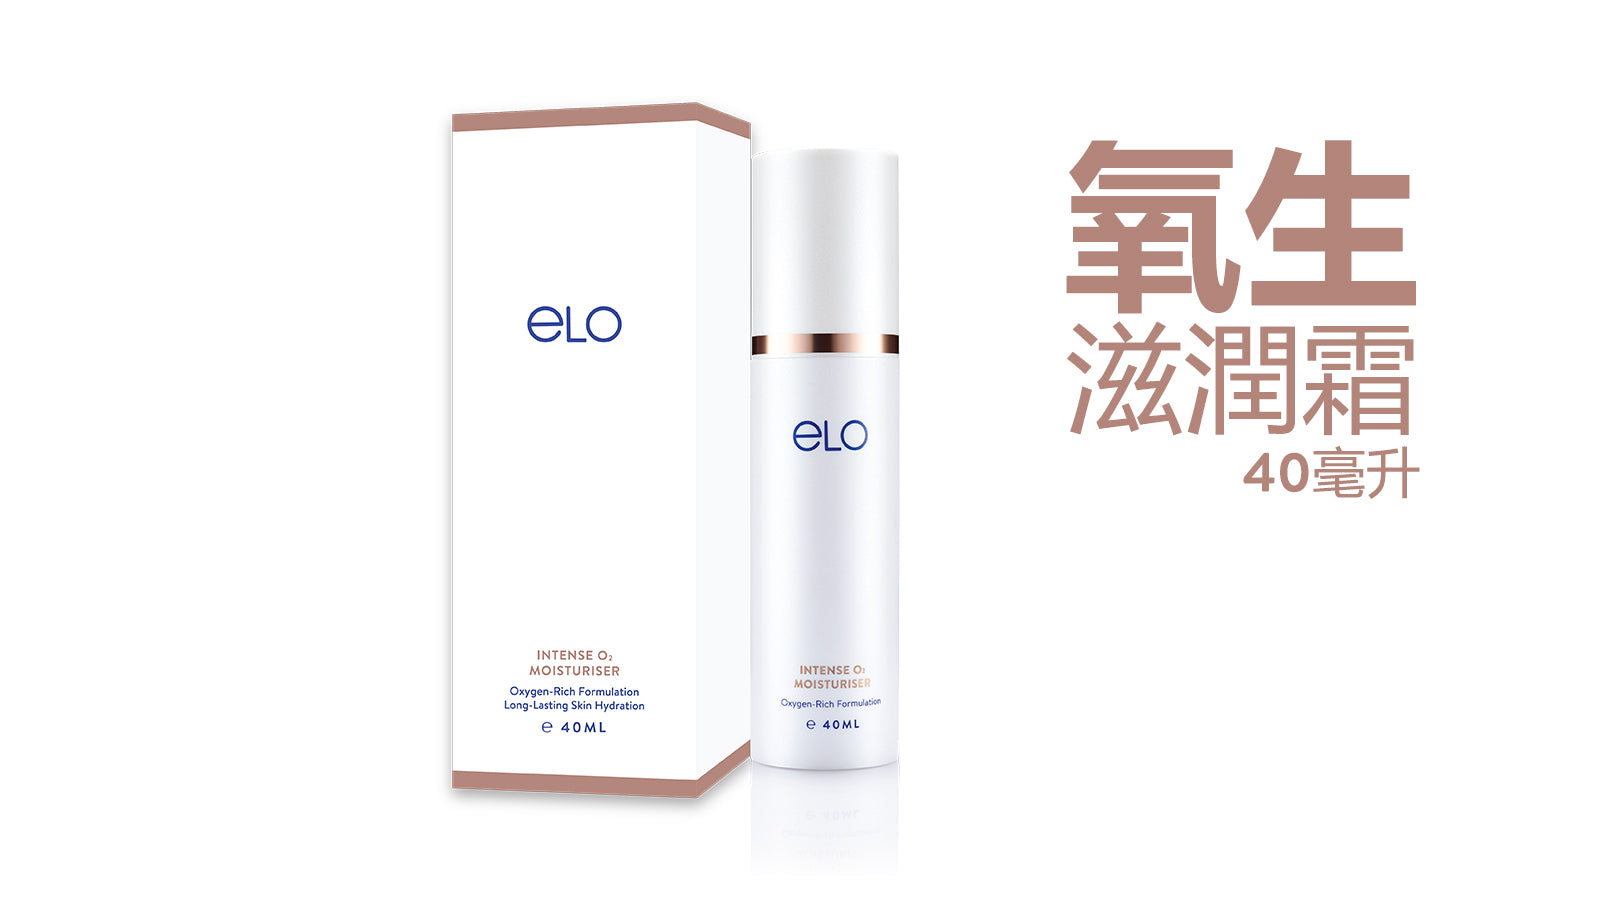 ELO Intense O₂ Moisturiser (Single Tube) (40ml)